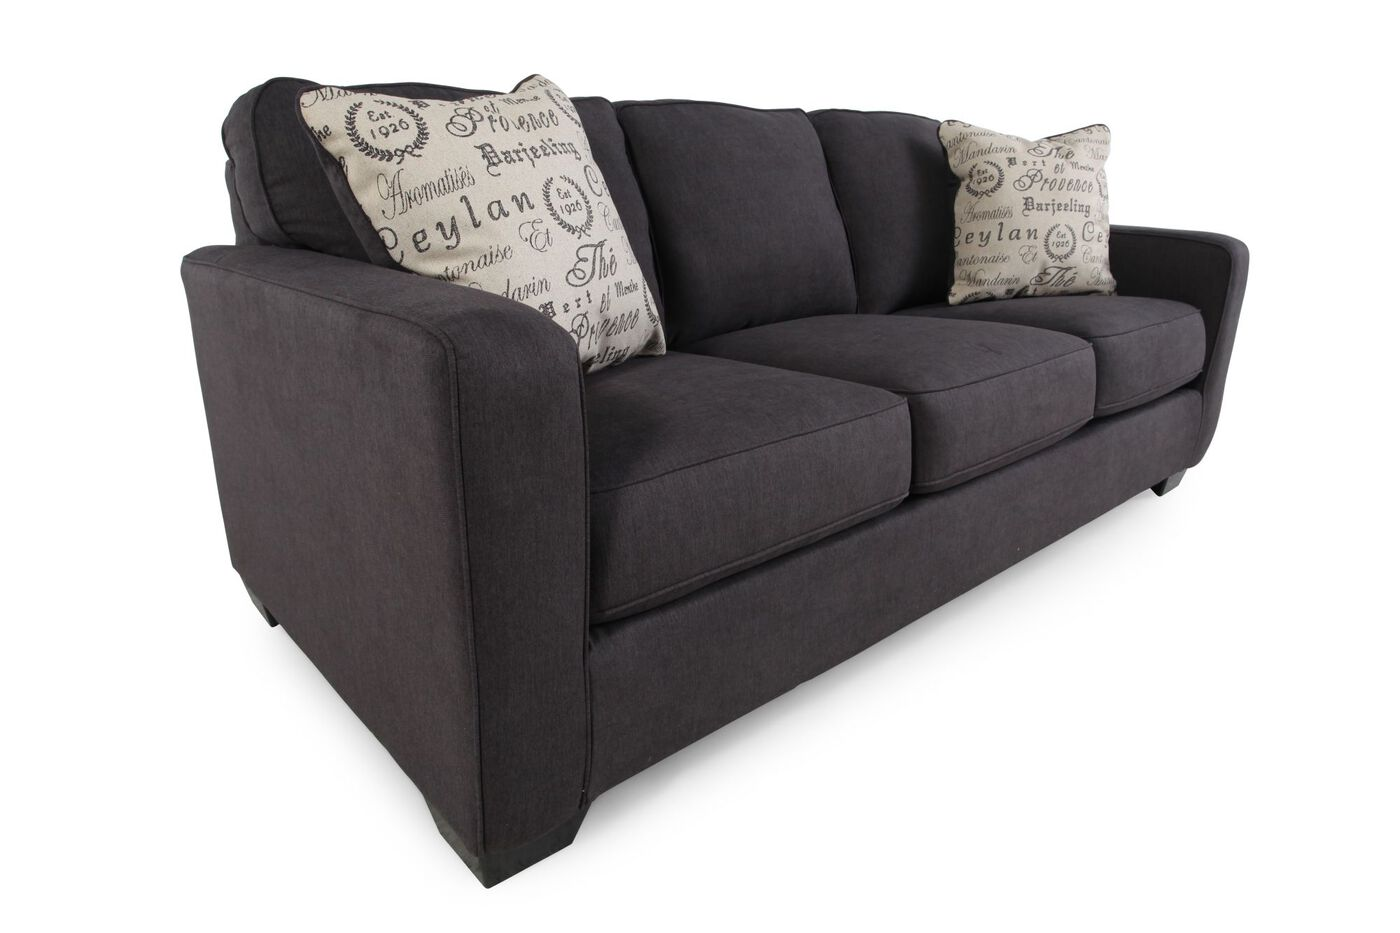 Low Profile Casual 84 Quot Sofa In Charcoal Mathis Brothers